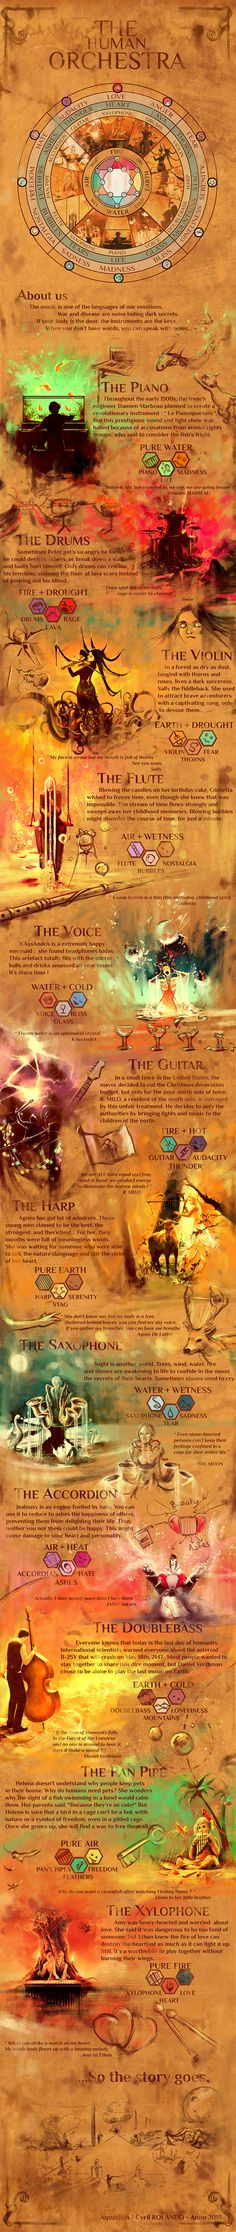 The Human Orchestra - Parchment version by AquaSixio.deviantart.com on @deviantART